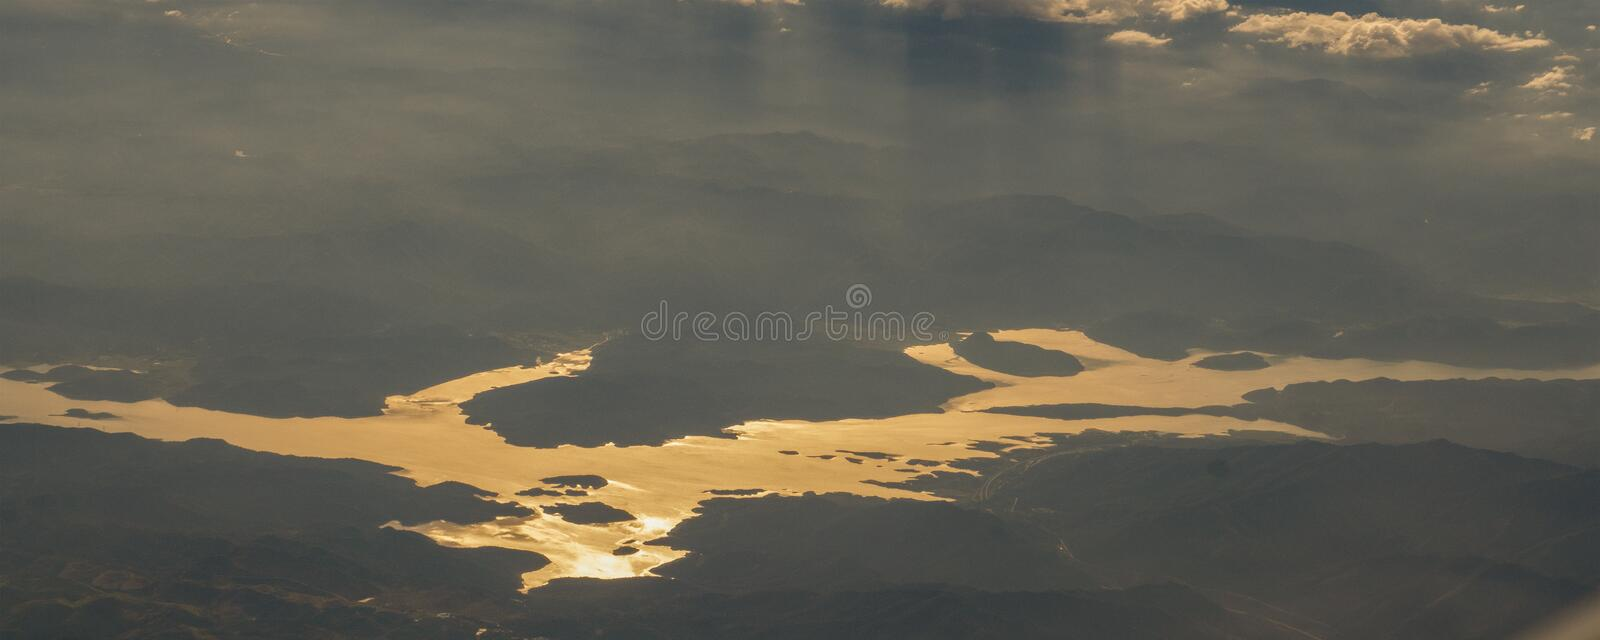 Take a picture of the ice on the bering strait(18). The bering strait is located in the high latitudes, cold weather, many storms and fog, especially royalty free stock photo